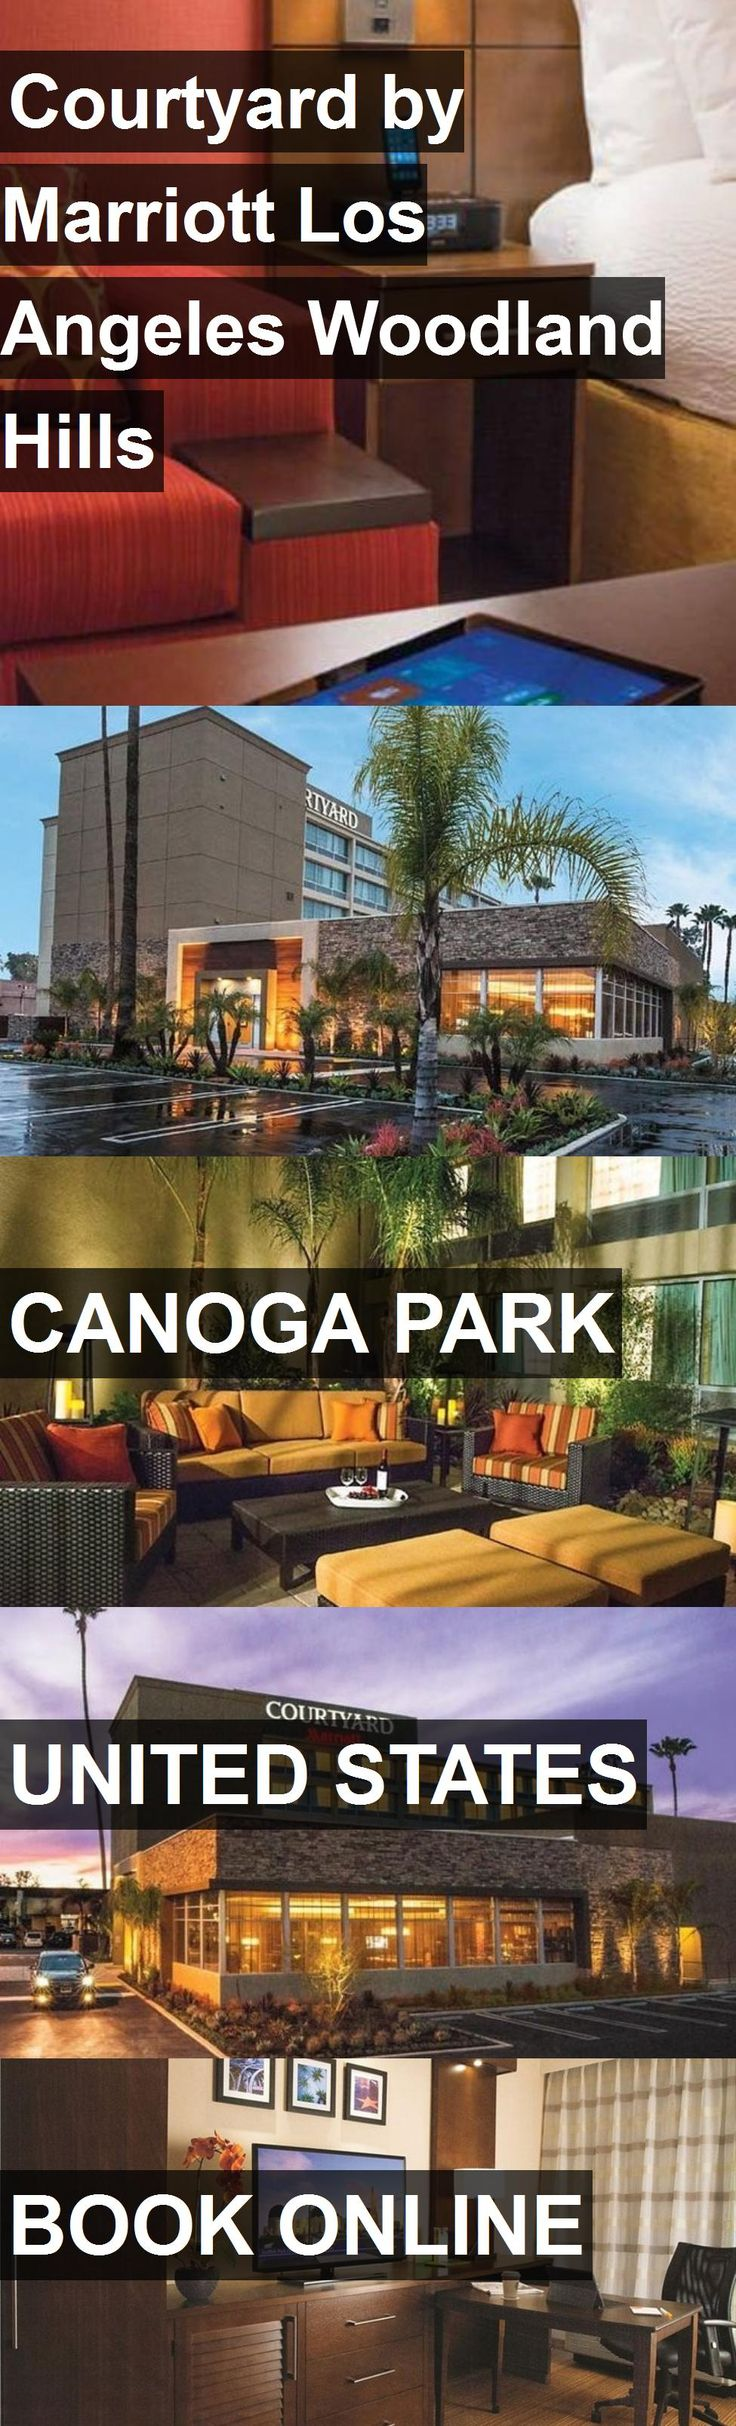 Hotel Courtyard by Marriott Los Angeles Woodland Hills in Canoga Park, United States. For more information, photos, reviews and best prices please follow the link. #UnitedStates #CanogaPark #travel #vacation #hotel